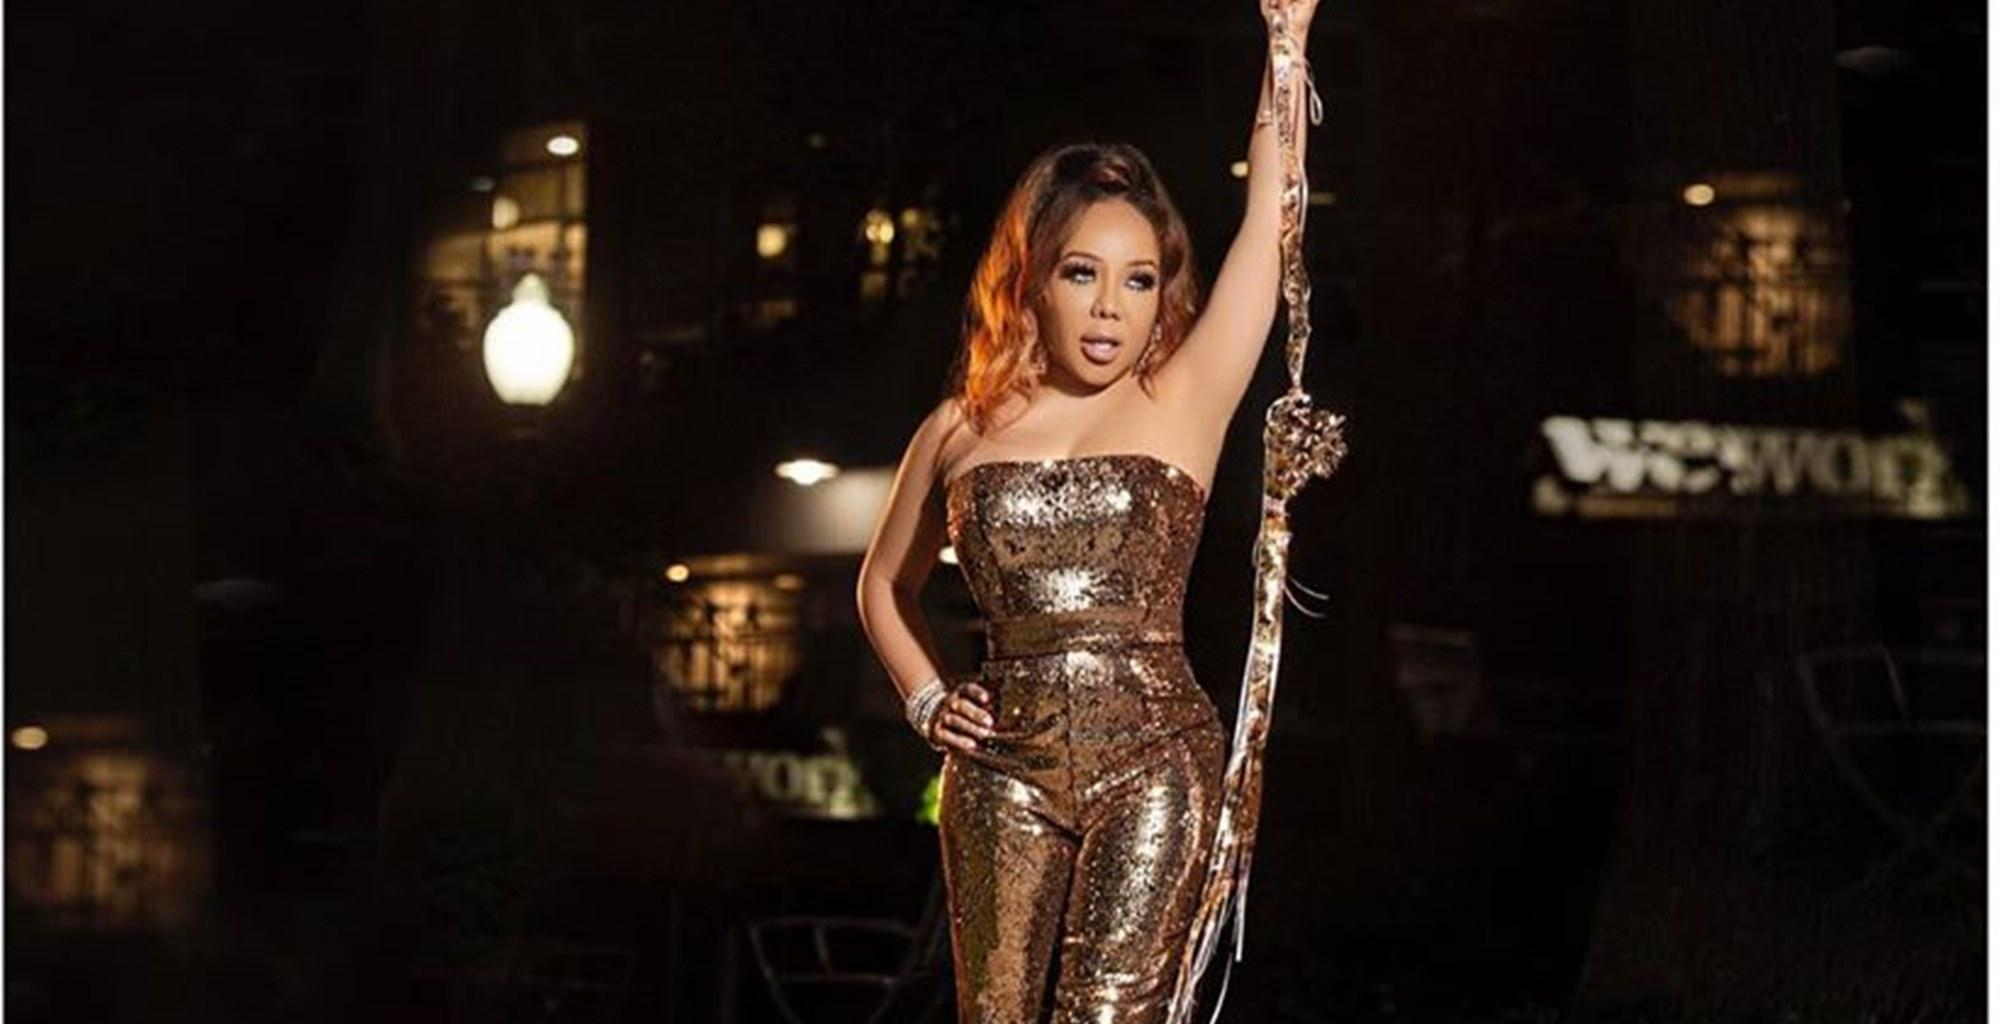 Tiny Harris Drops An Emotional Message On Her Social Media Account